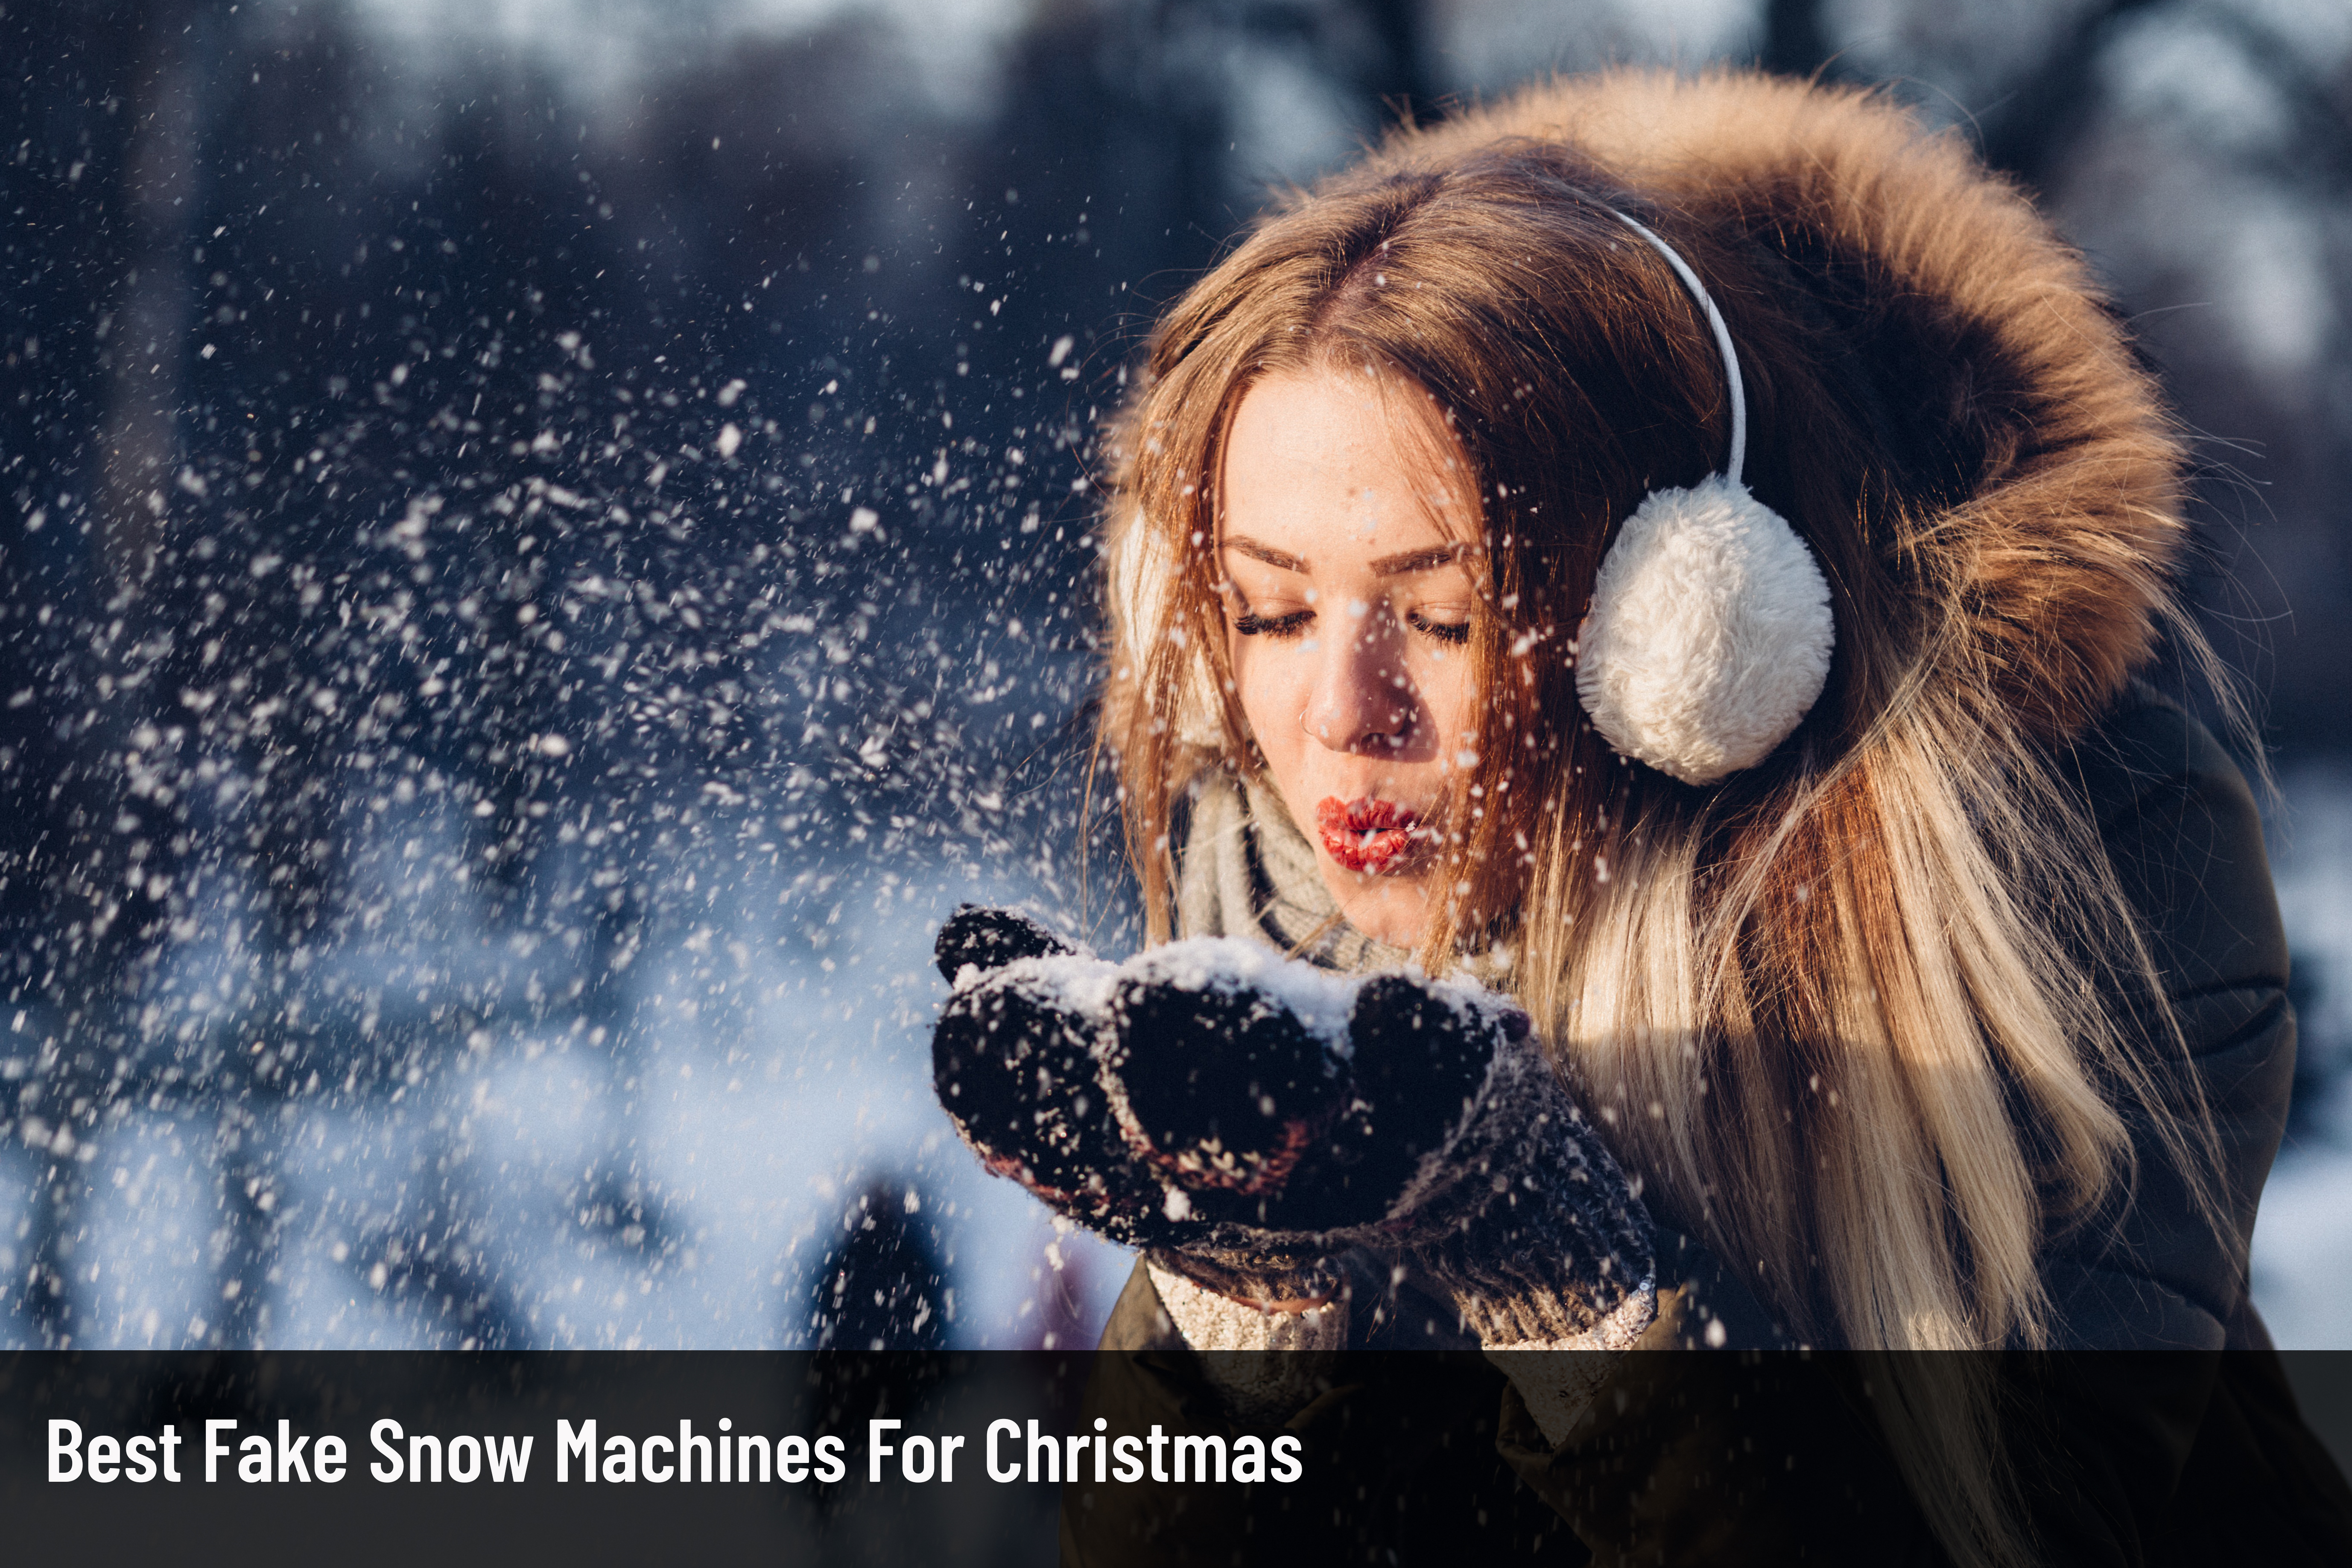 Best Fake Snow Machines For Christmas 2020